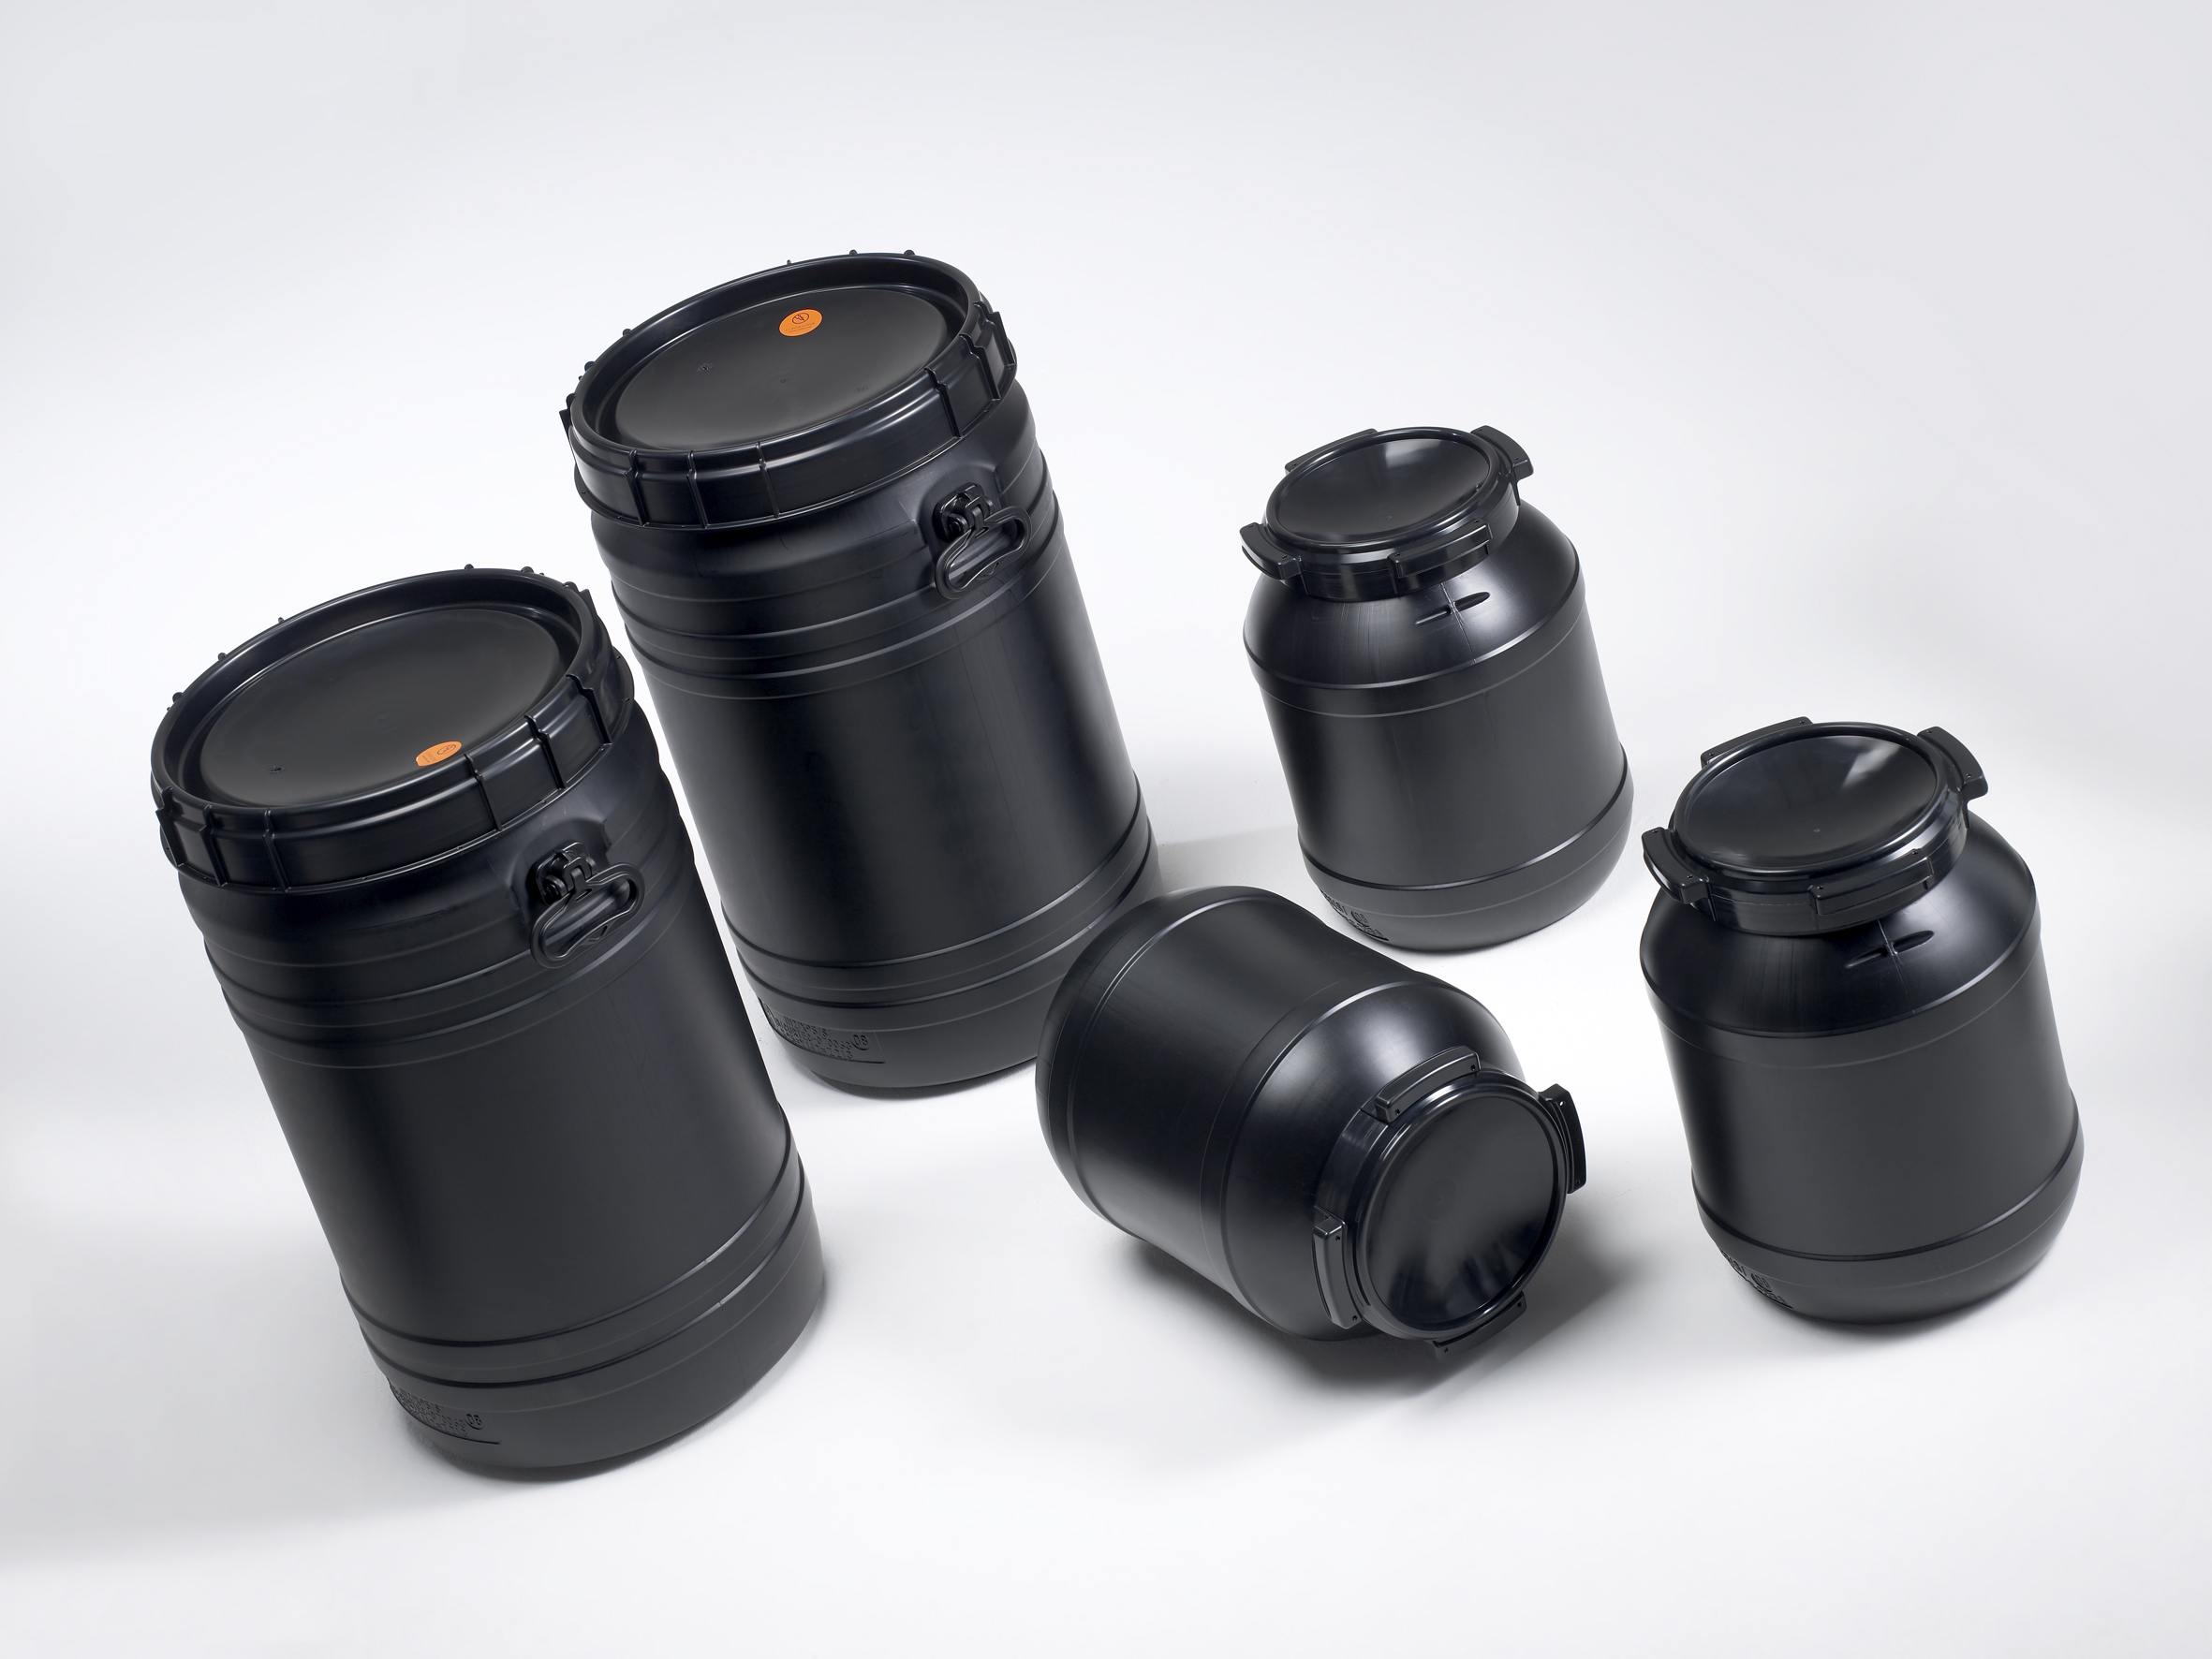 Five black plastic drums of different sizes, specially designed to contain flammable contents